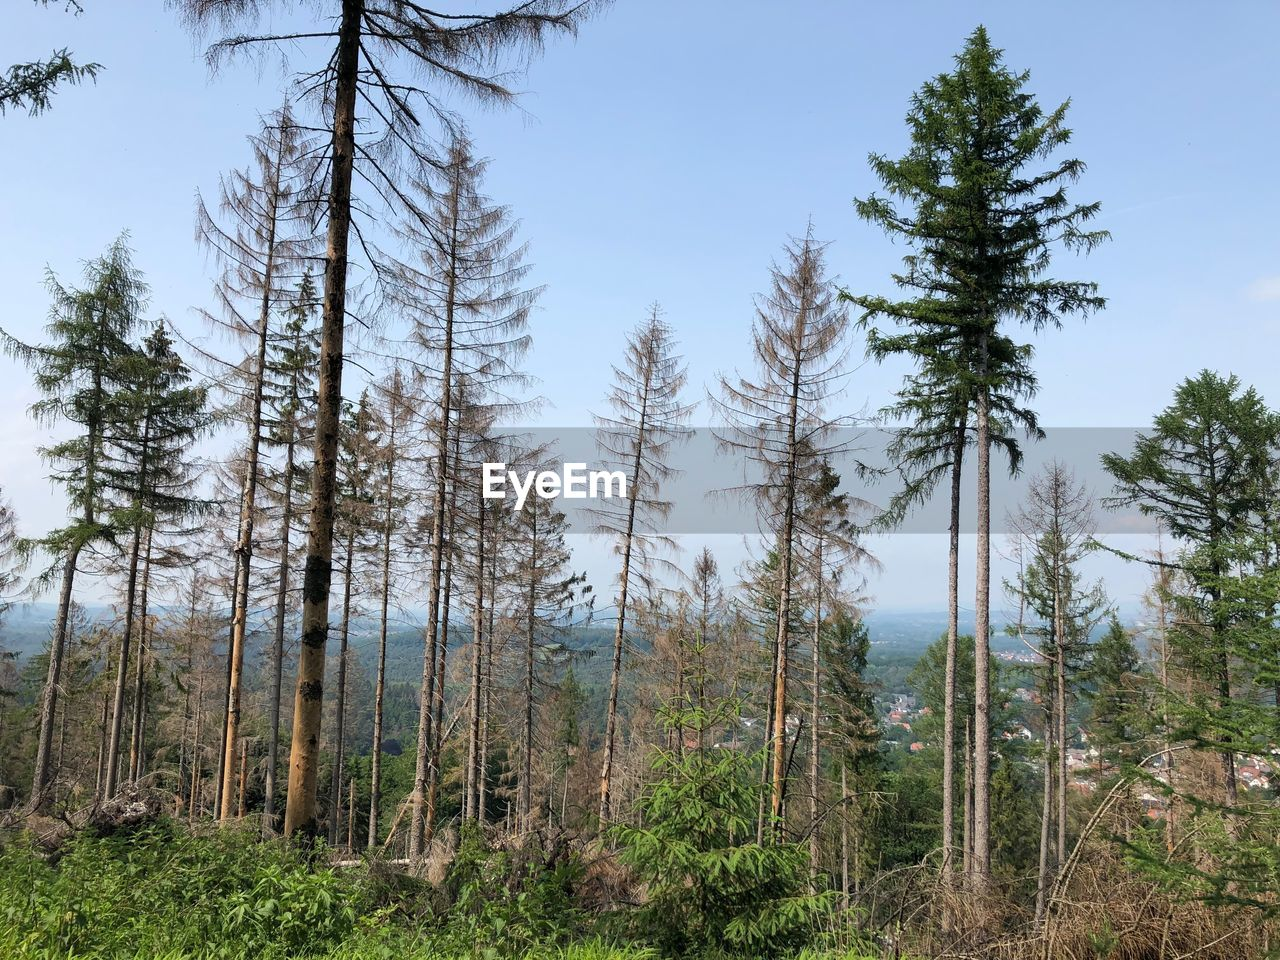 tree, plant, land, forest, growth, sky, nature, scenics - nature, environment, tranquil scene, pine tree, non-urban scene, no people, tree trunk, trunk, beauty in nature, landscape, tranquility, day, woodland, outdoors, evergreen tree, coniferous tree, pine woodland